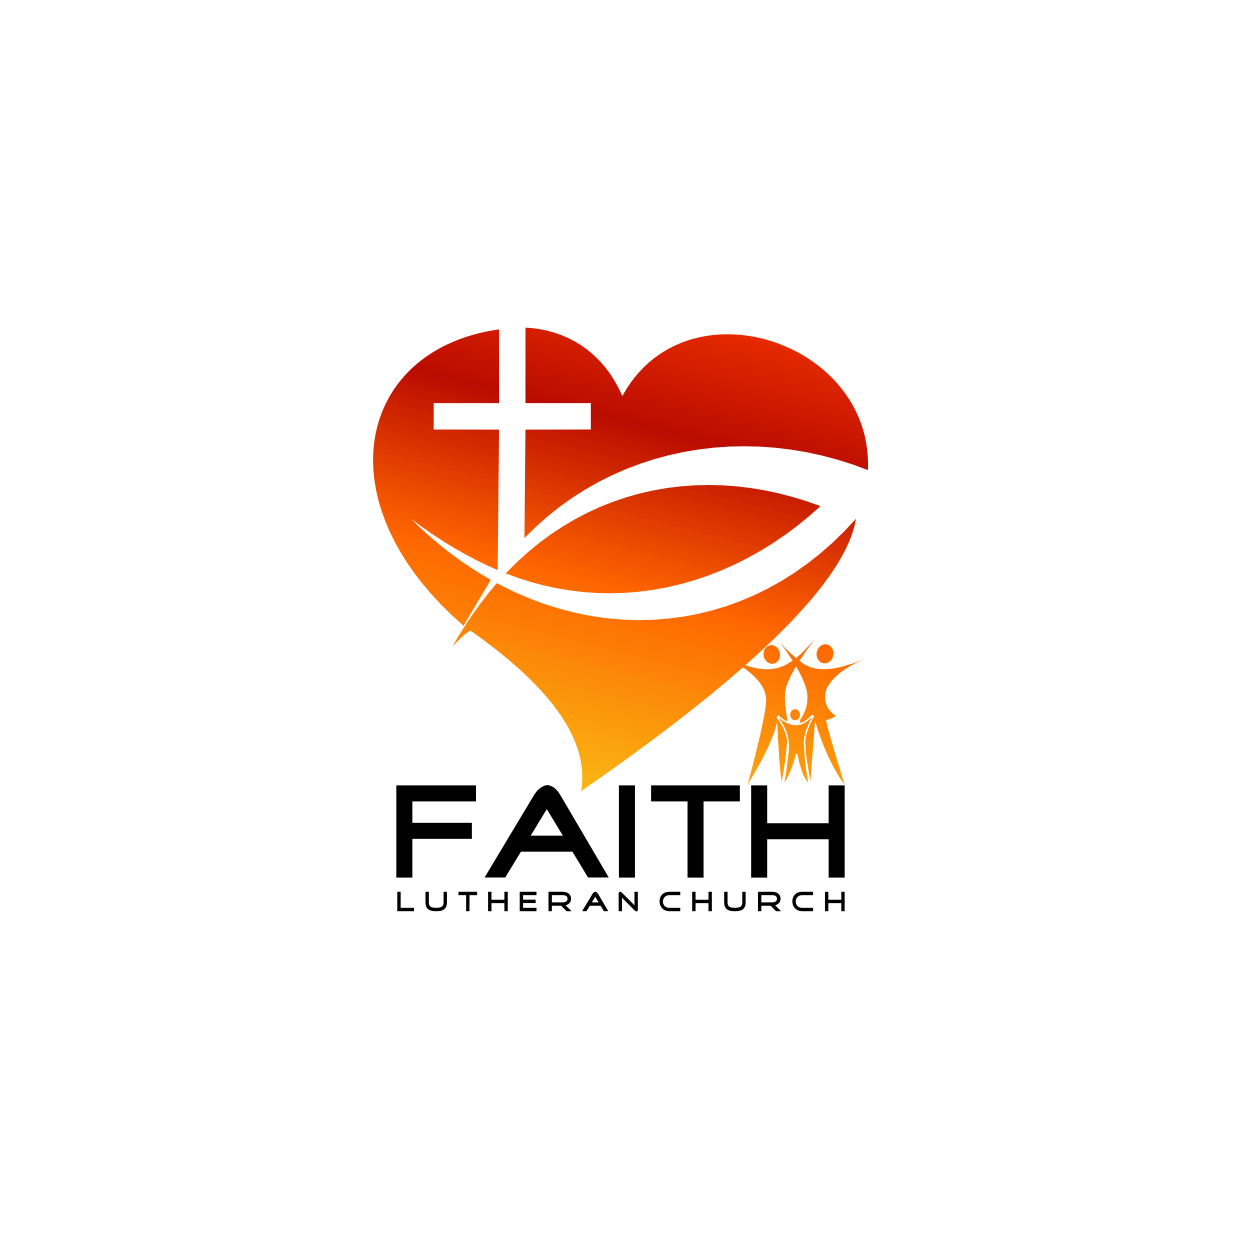 Logo Design by Analla Art - Entry No. 182 in the Logo Design Contest Logo Design for Faith Lutheran Church.